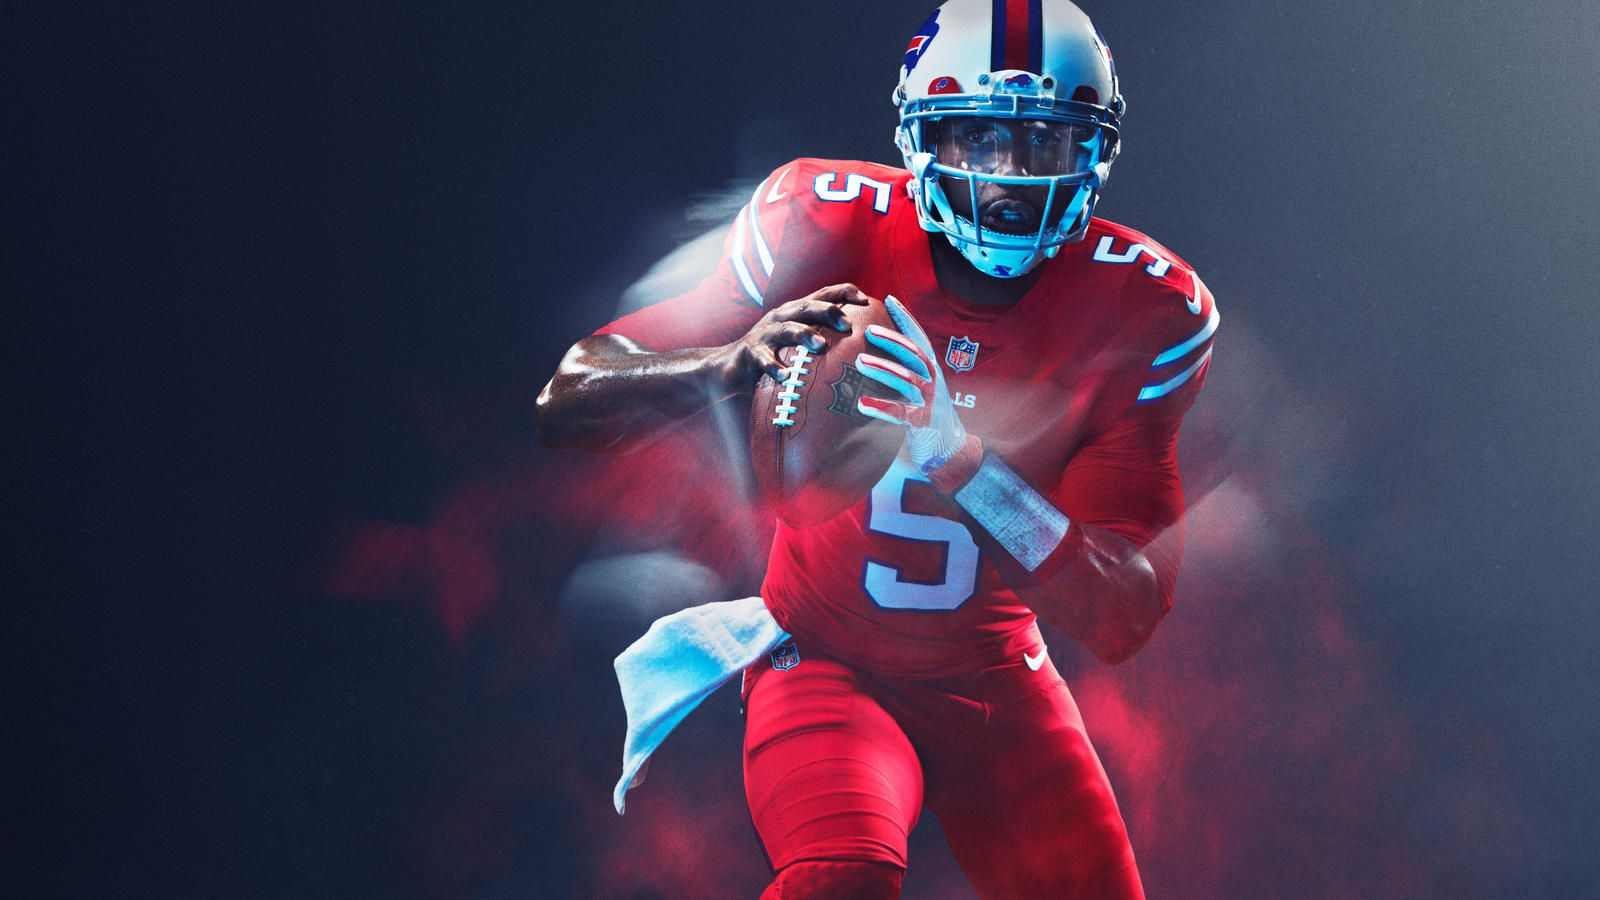 Nike News - Nike and NFL Light Up Thursday Night Football f392e0d70